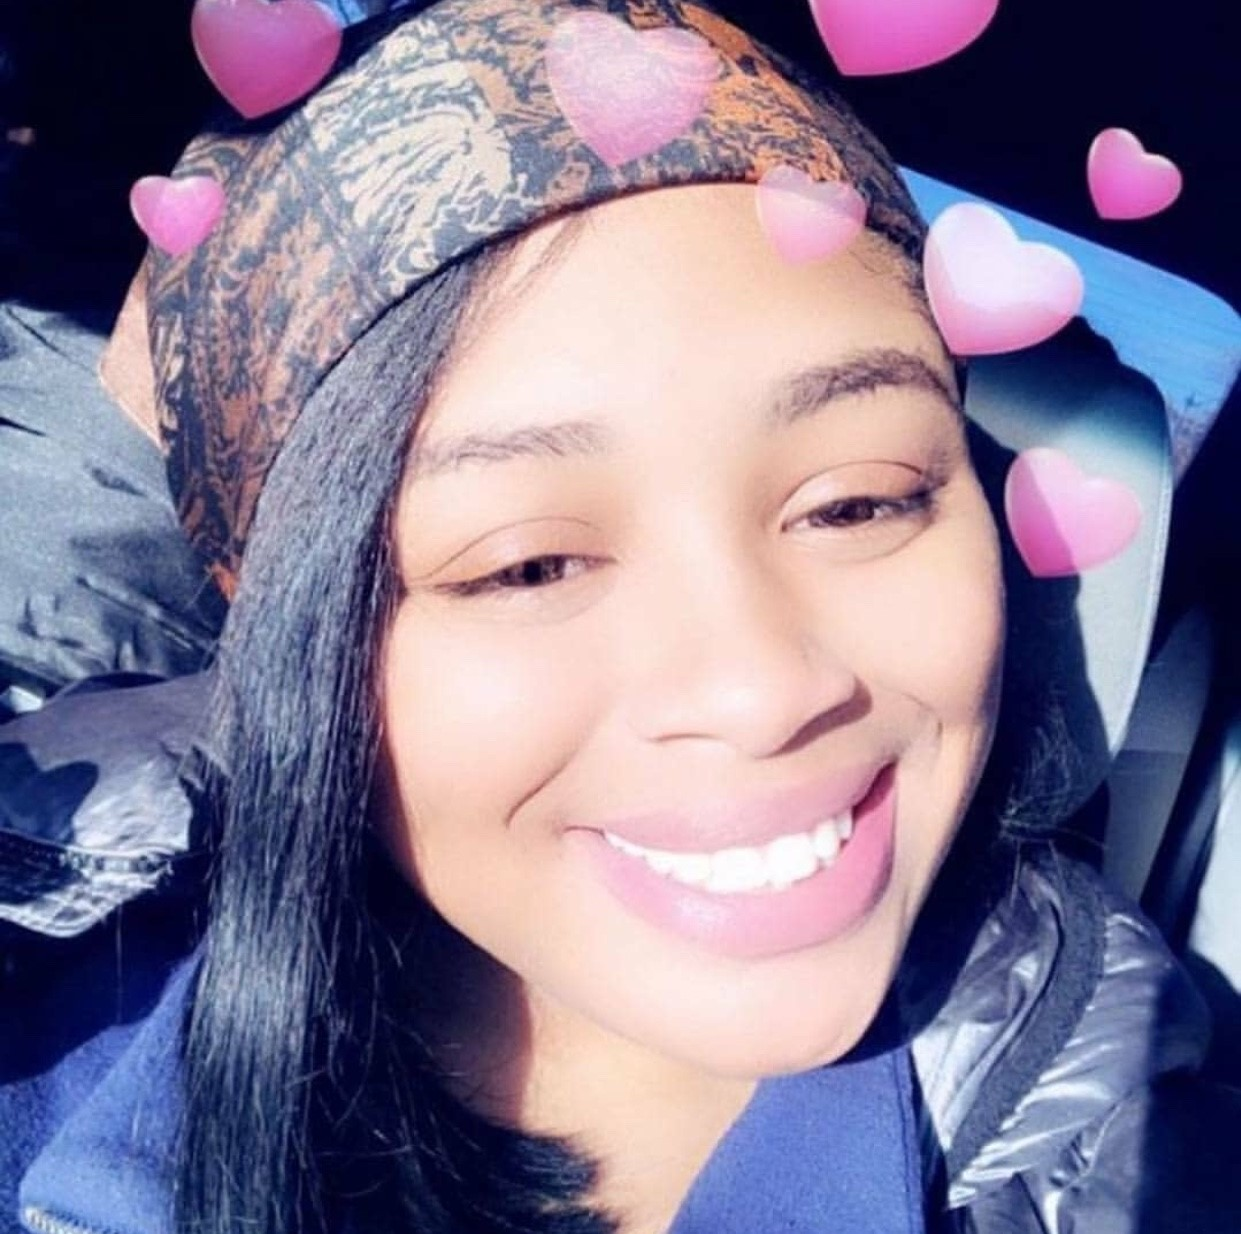 In this photo: 16-year-old Taiyania Thompson who authorities say was shot on Thursday, Jan. 25, 2018. (Courtesy of family)